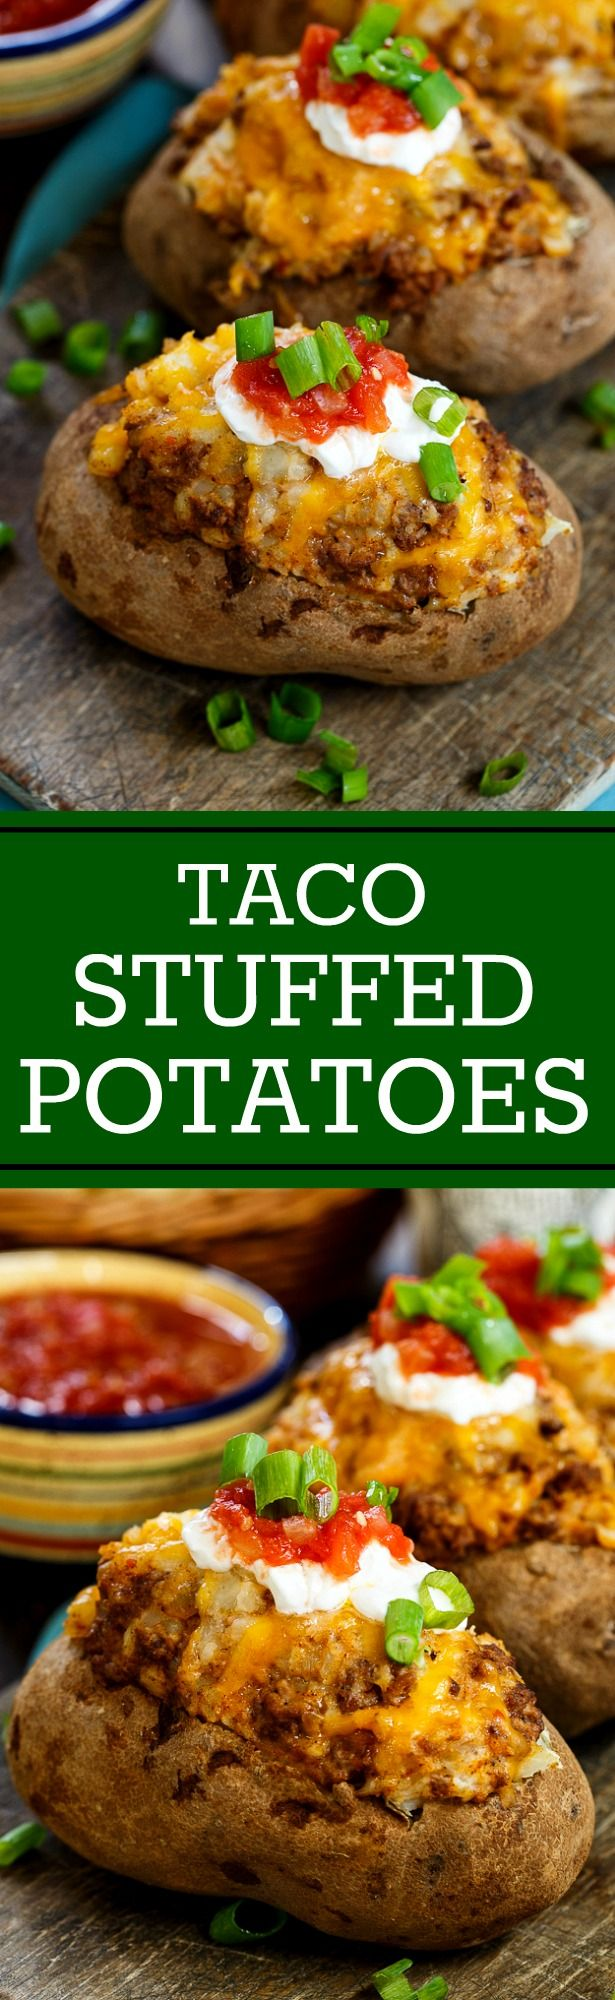 Ground beef cooked in taco seasoning, lots of cheese and sour cream make these stuffed potatoes a hearty and delicious meal.